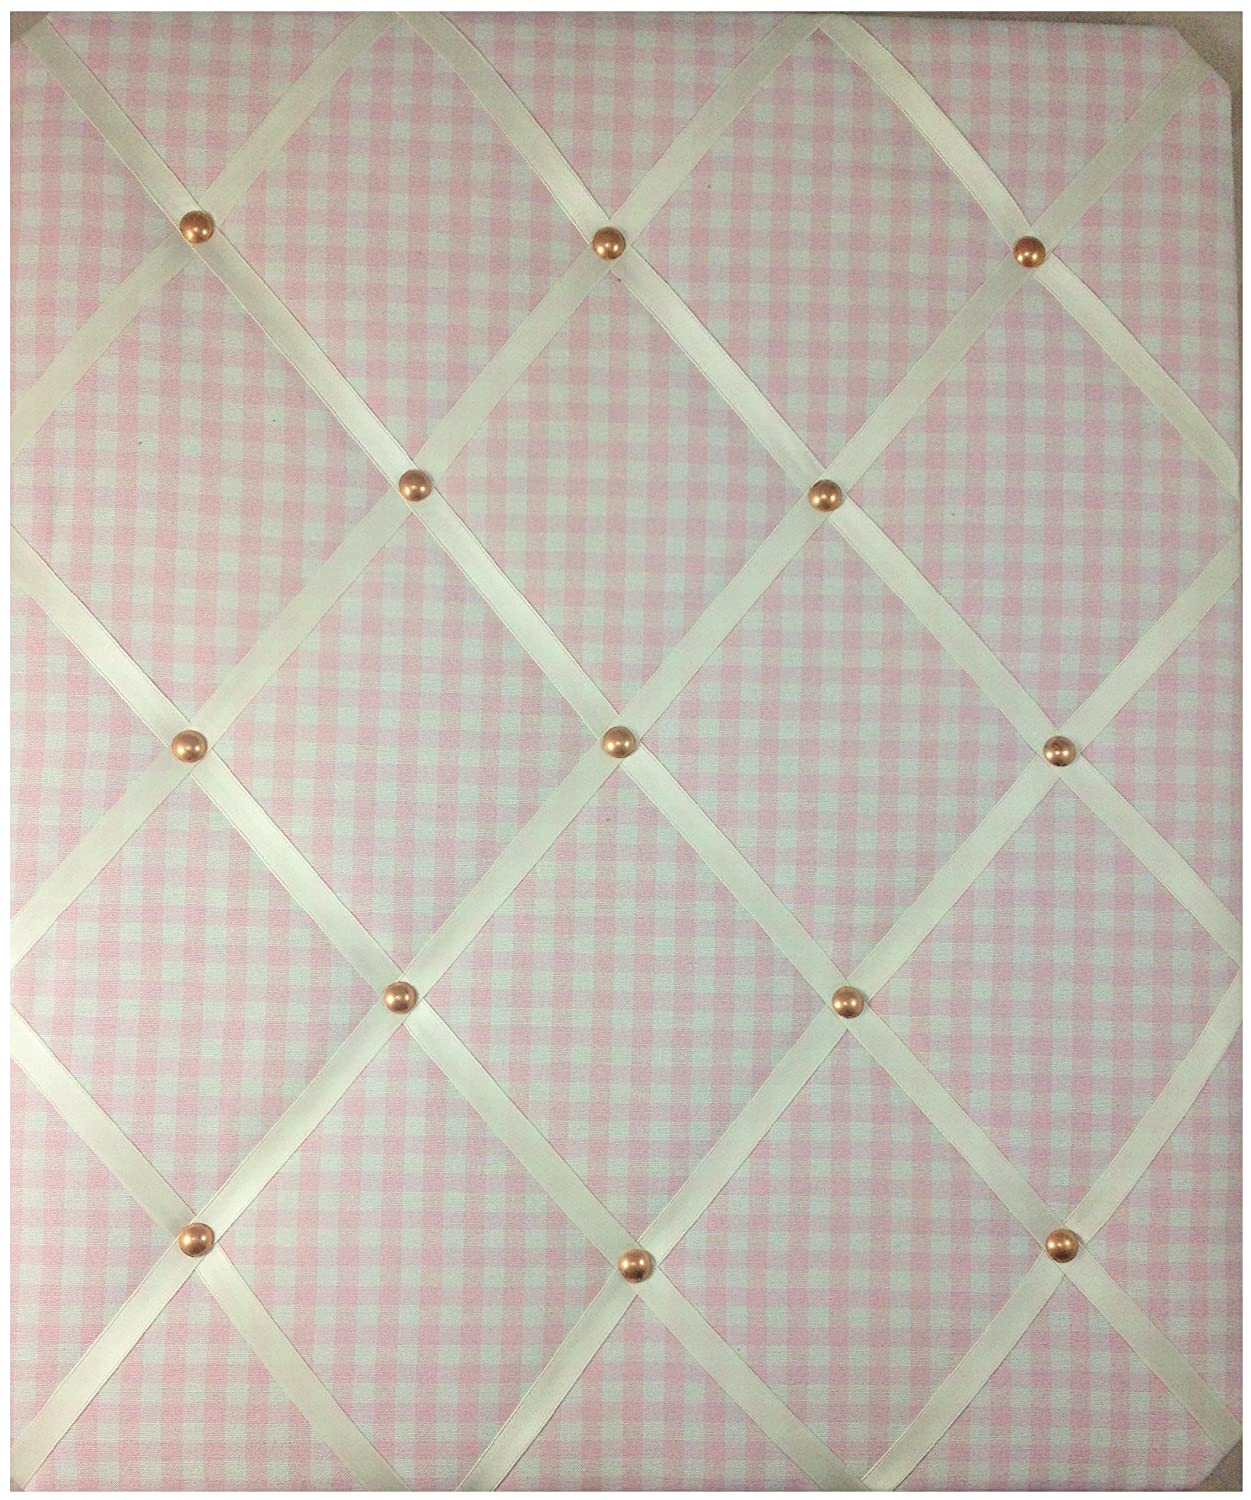 """Notice Boards, Memo Boards, Ribbon Boards Size Large 40x48cm """"Pink Gingham with Rose Gold Detail"""" Wall Decor Eternal Earth"""